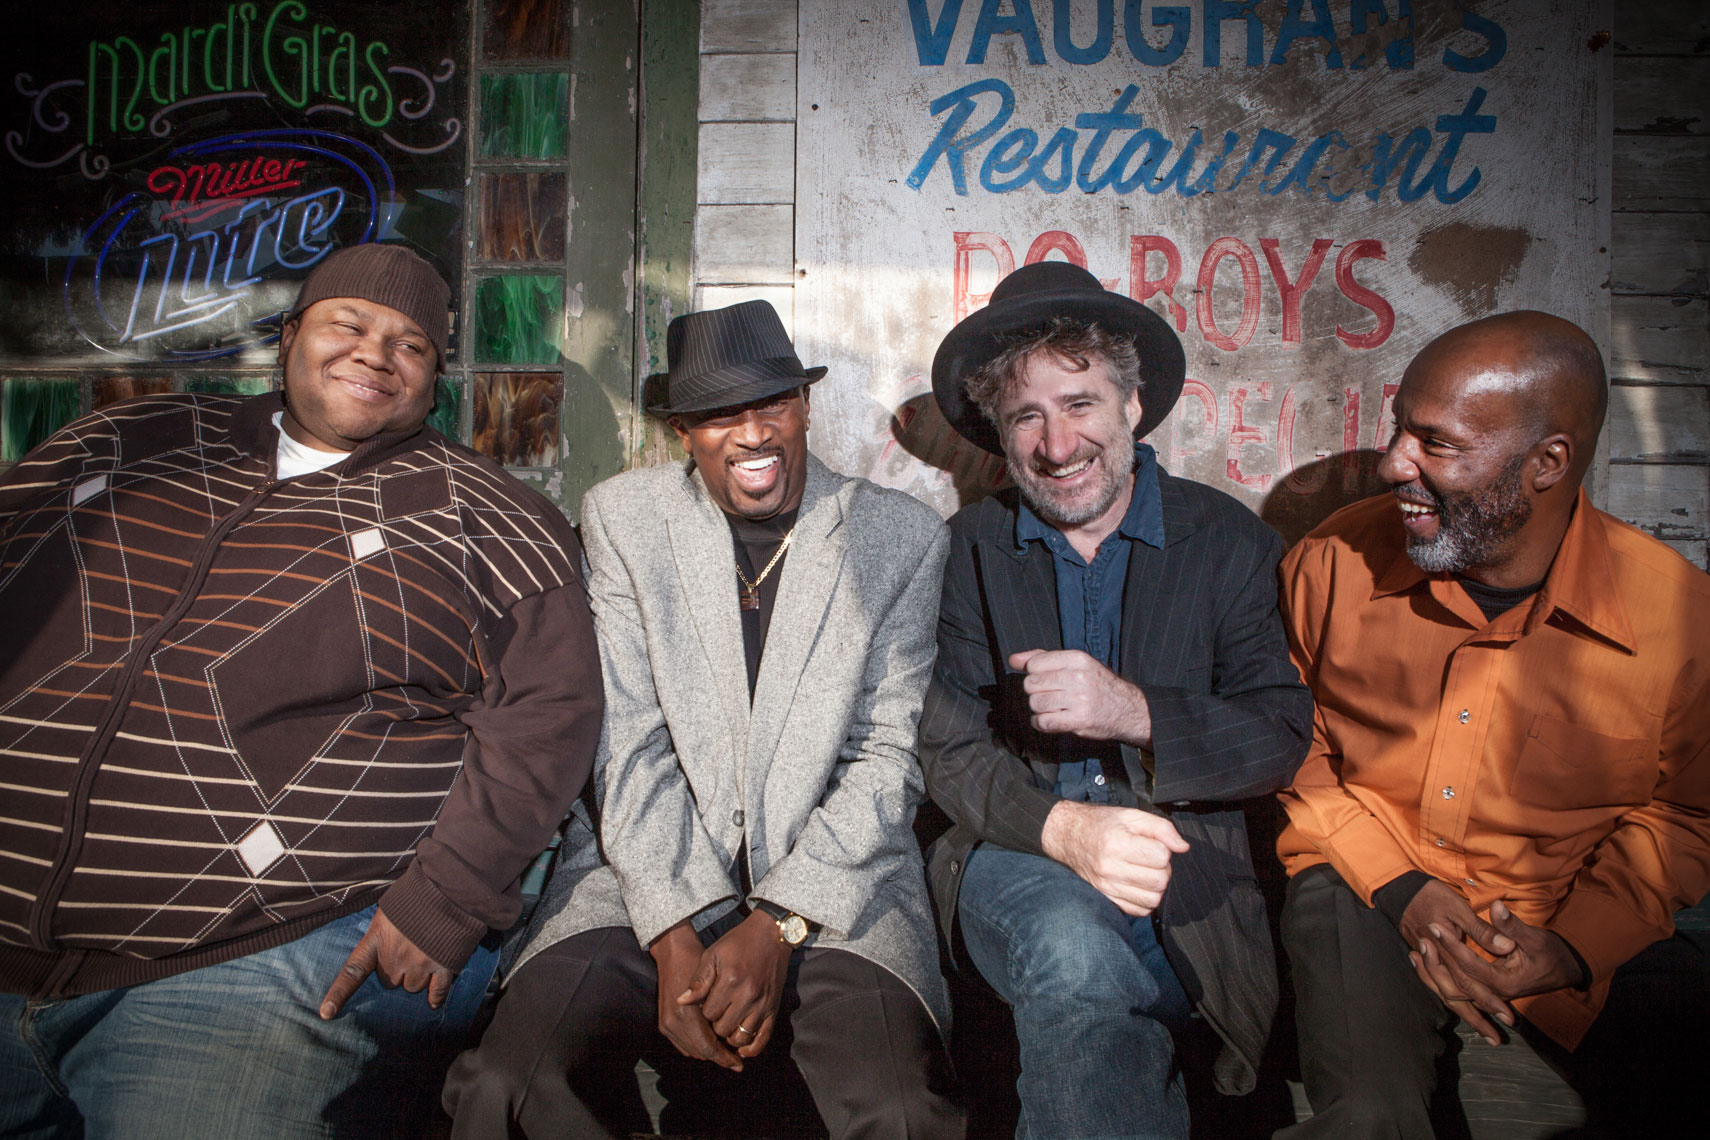 Jon Cleary & The Monster Gents at Vaughans